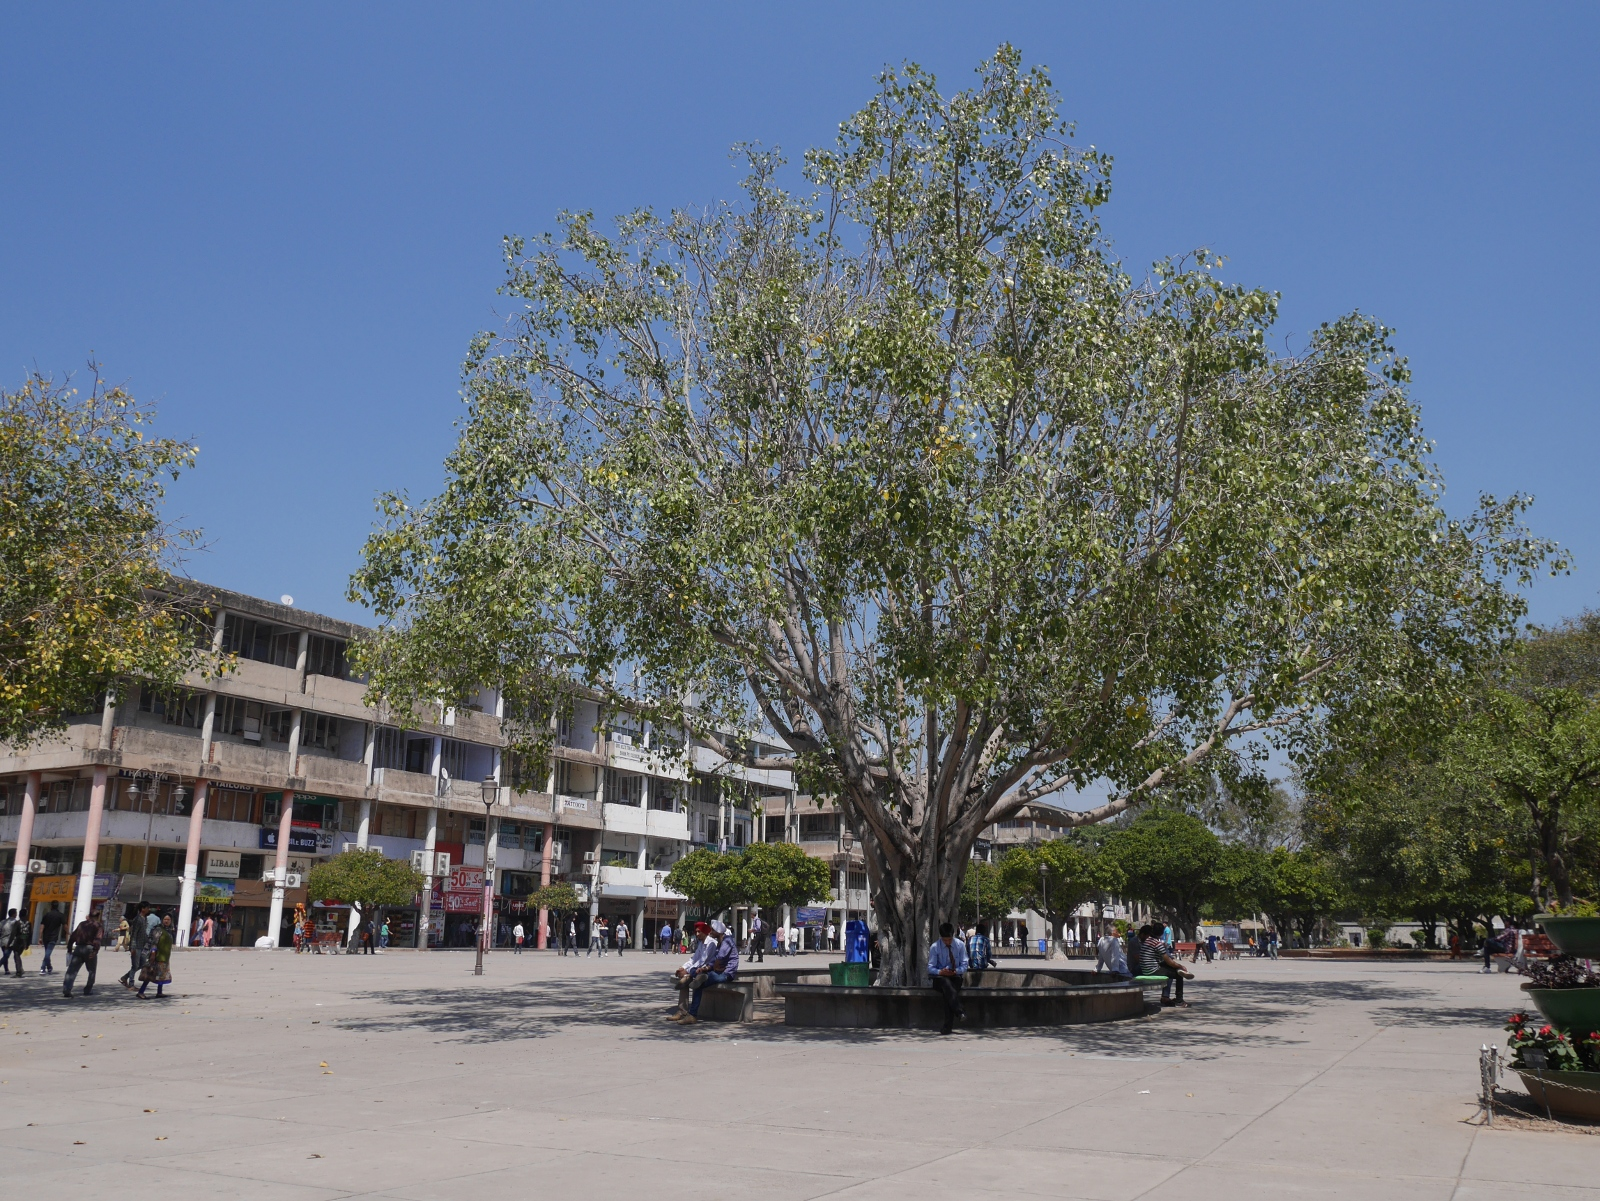 A pipal tree in Sector 17, Chandigarh.